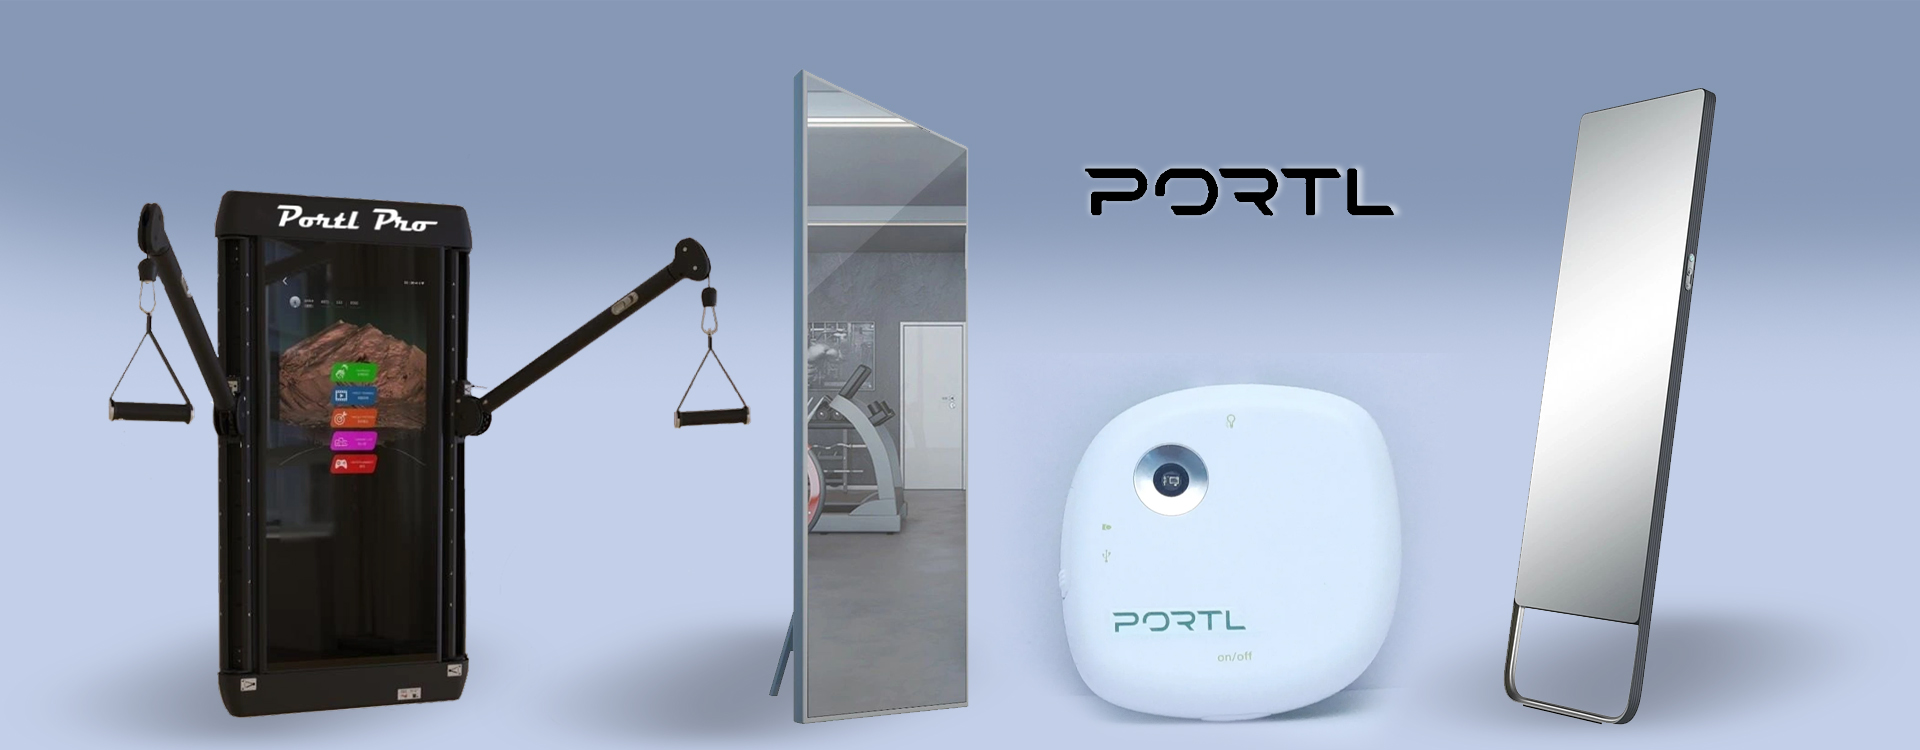 Portl through its innovative products provides personalised home workouts.